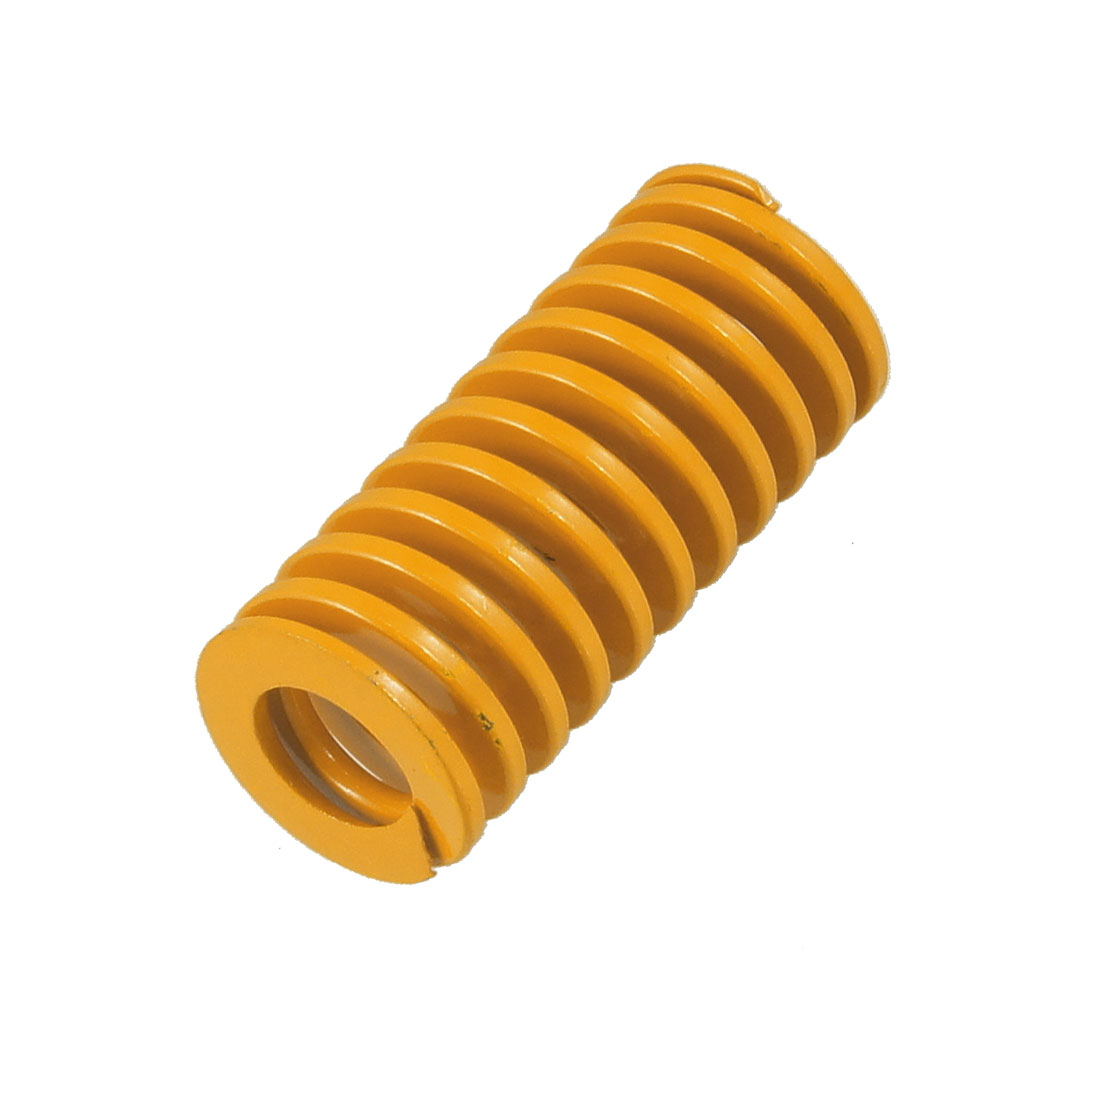 Orange 25mm x 13mm x 55mm Metal Tubular Section Mould Die Spring